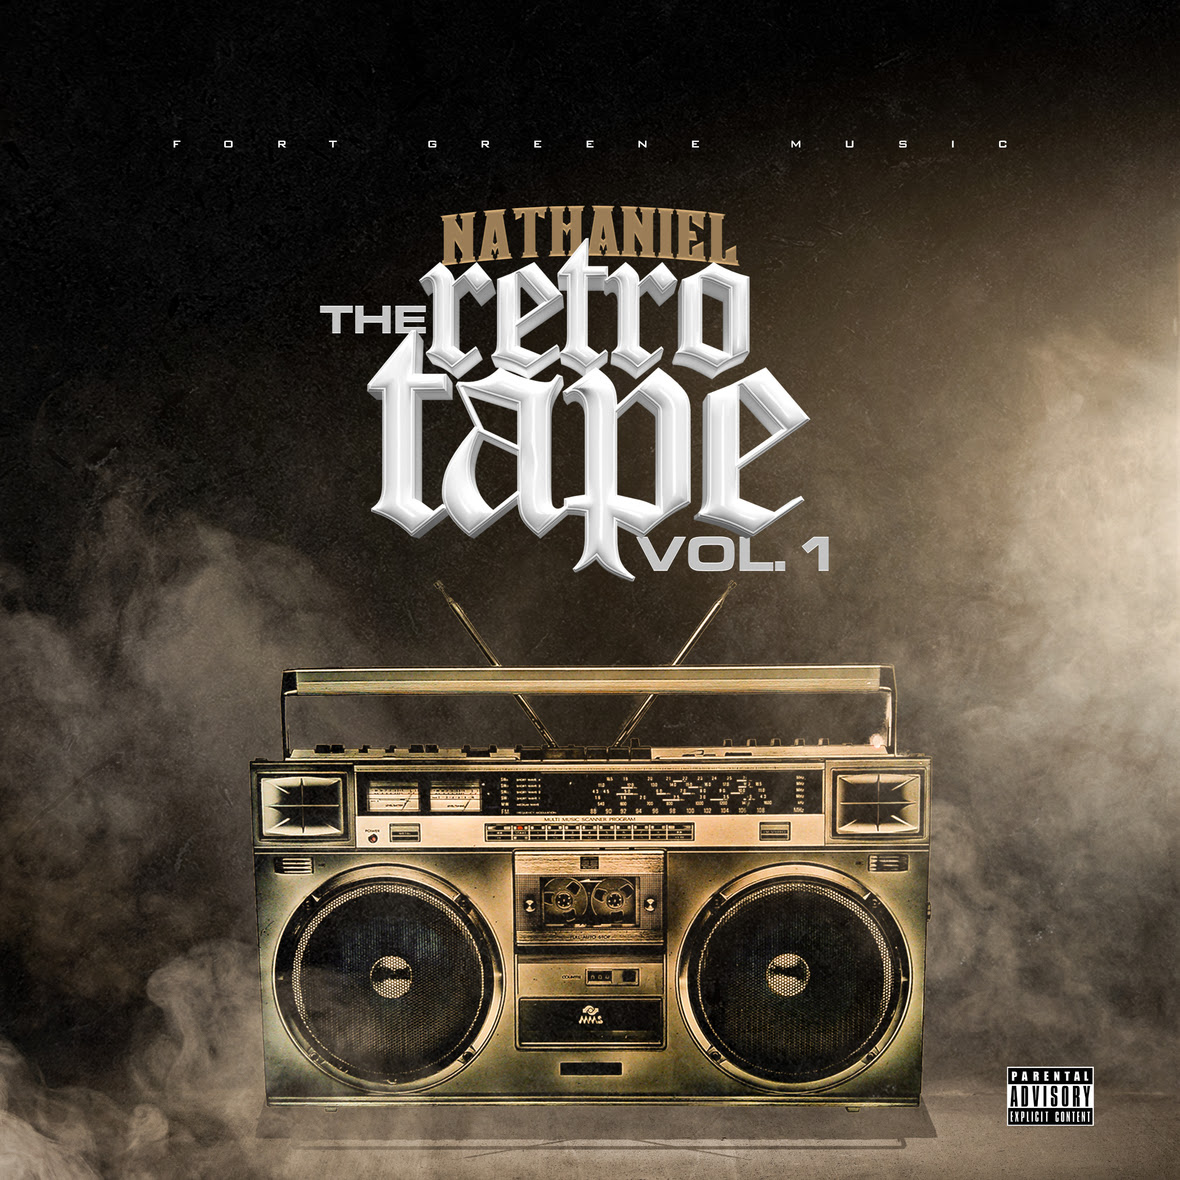 The Retro Tape